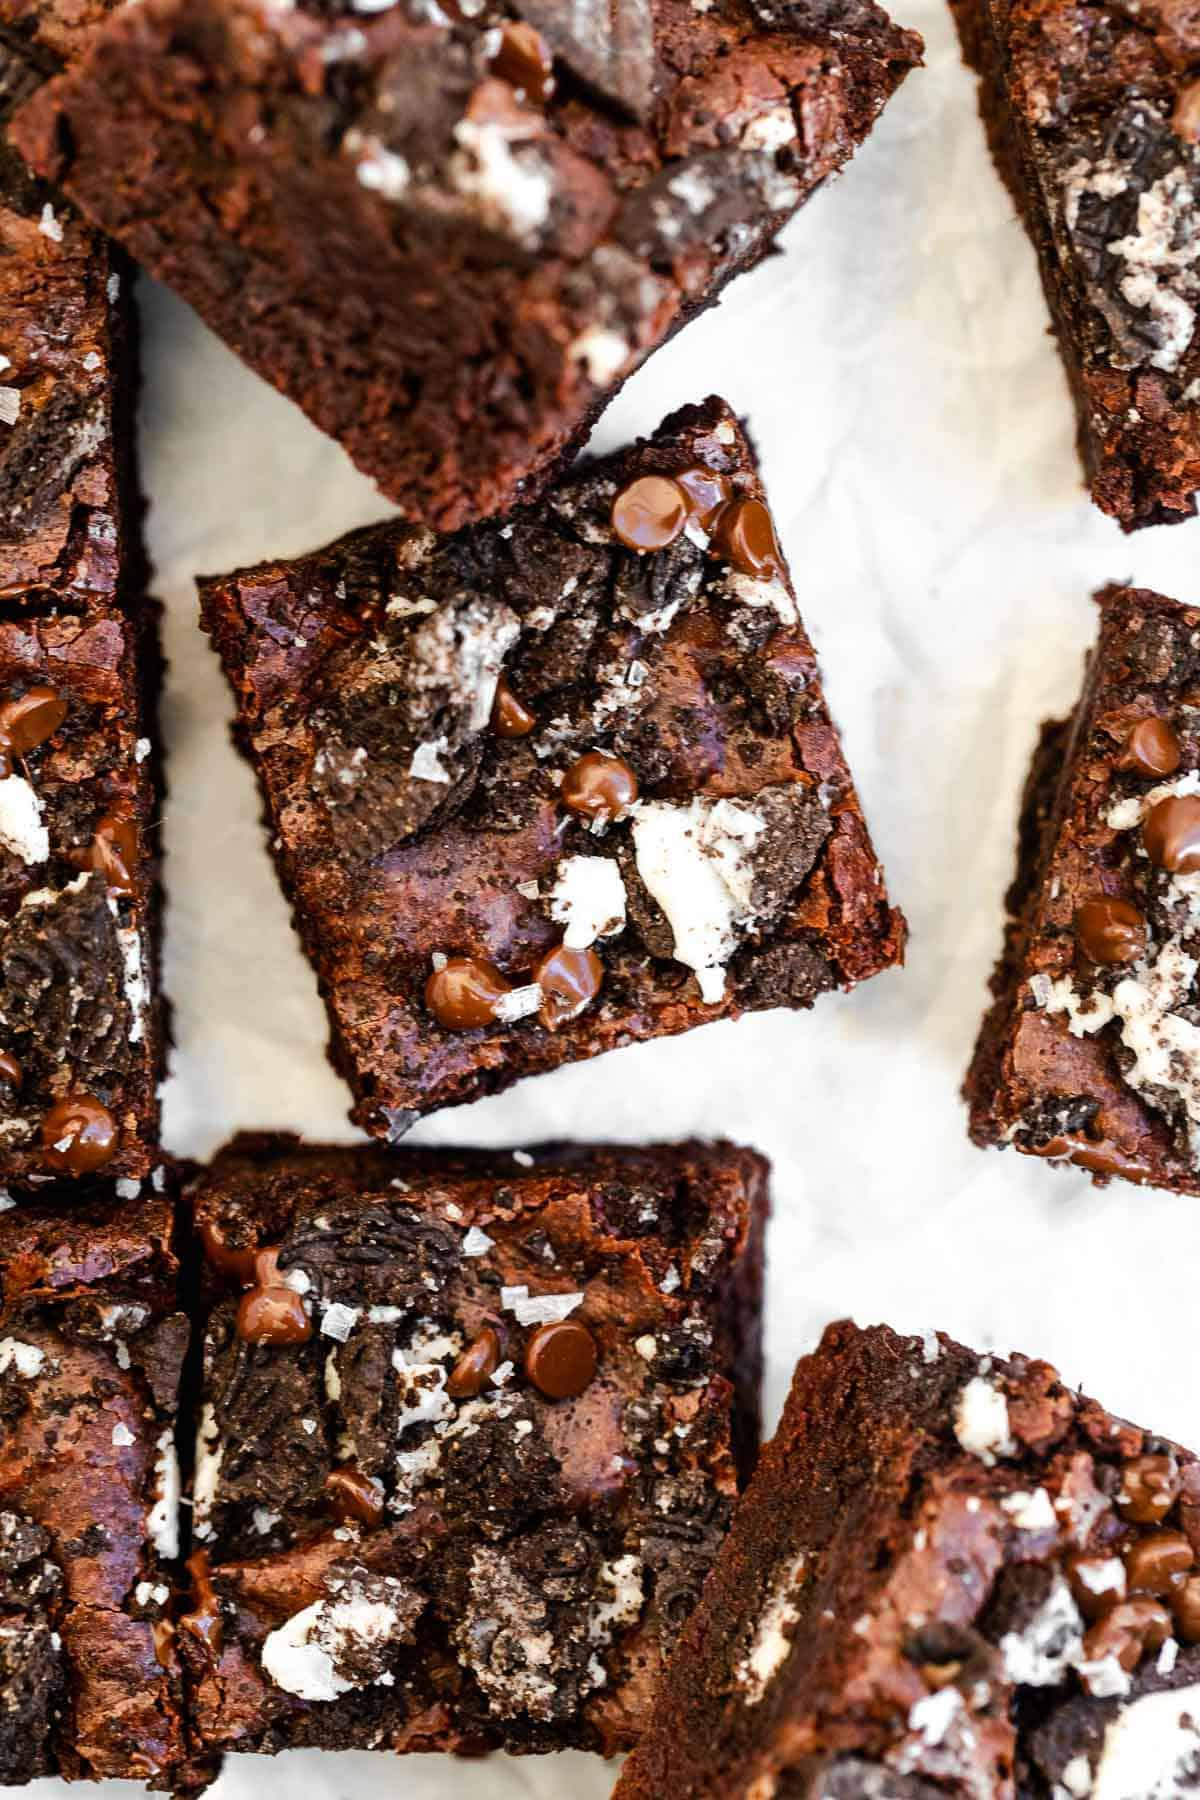 oreo brownies cut into squares with chocolate chips on top